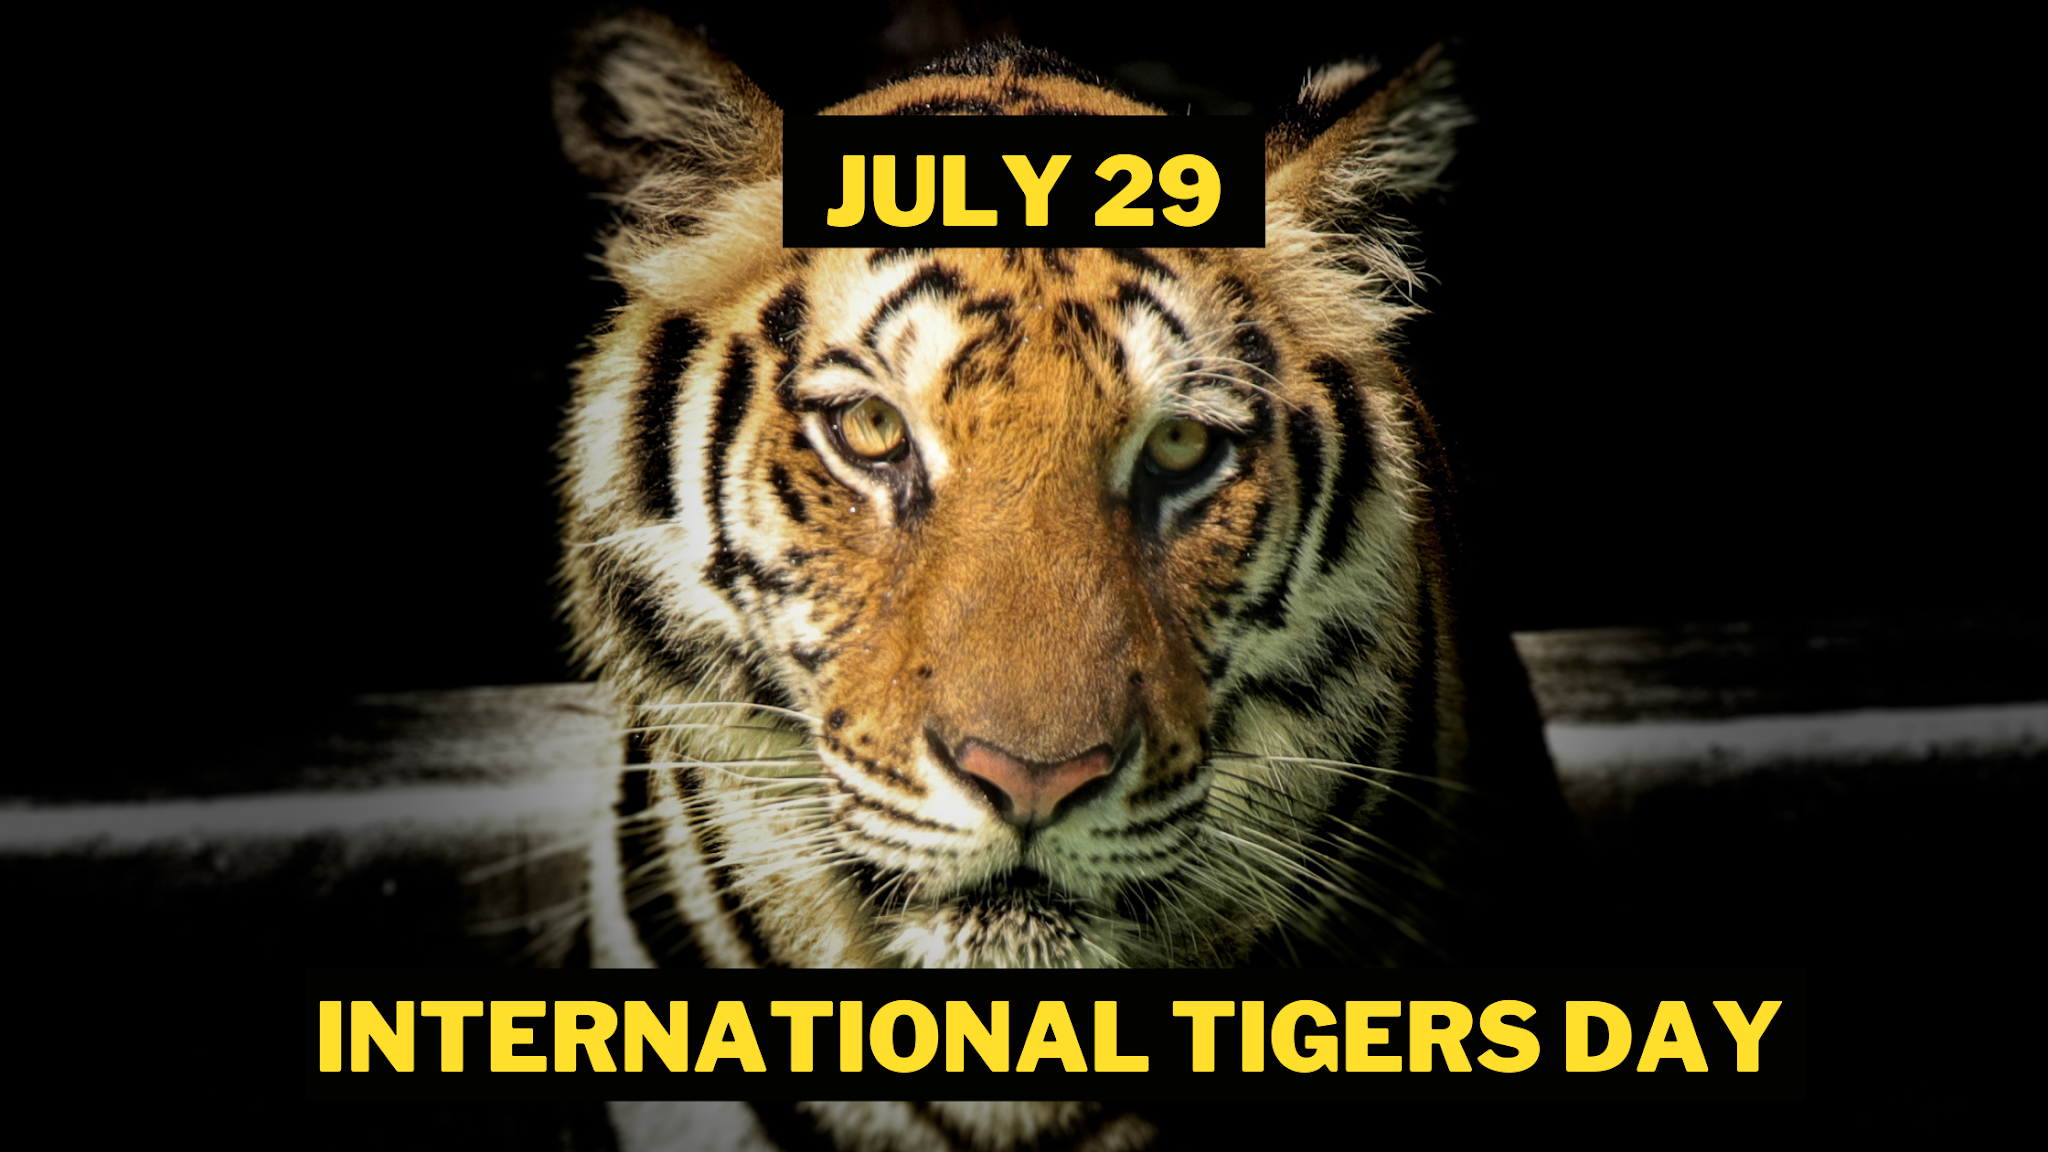 International Tigers Day Images save tigers